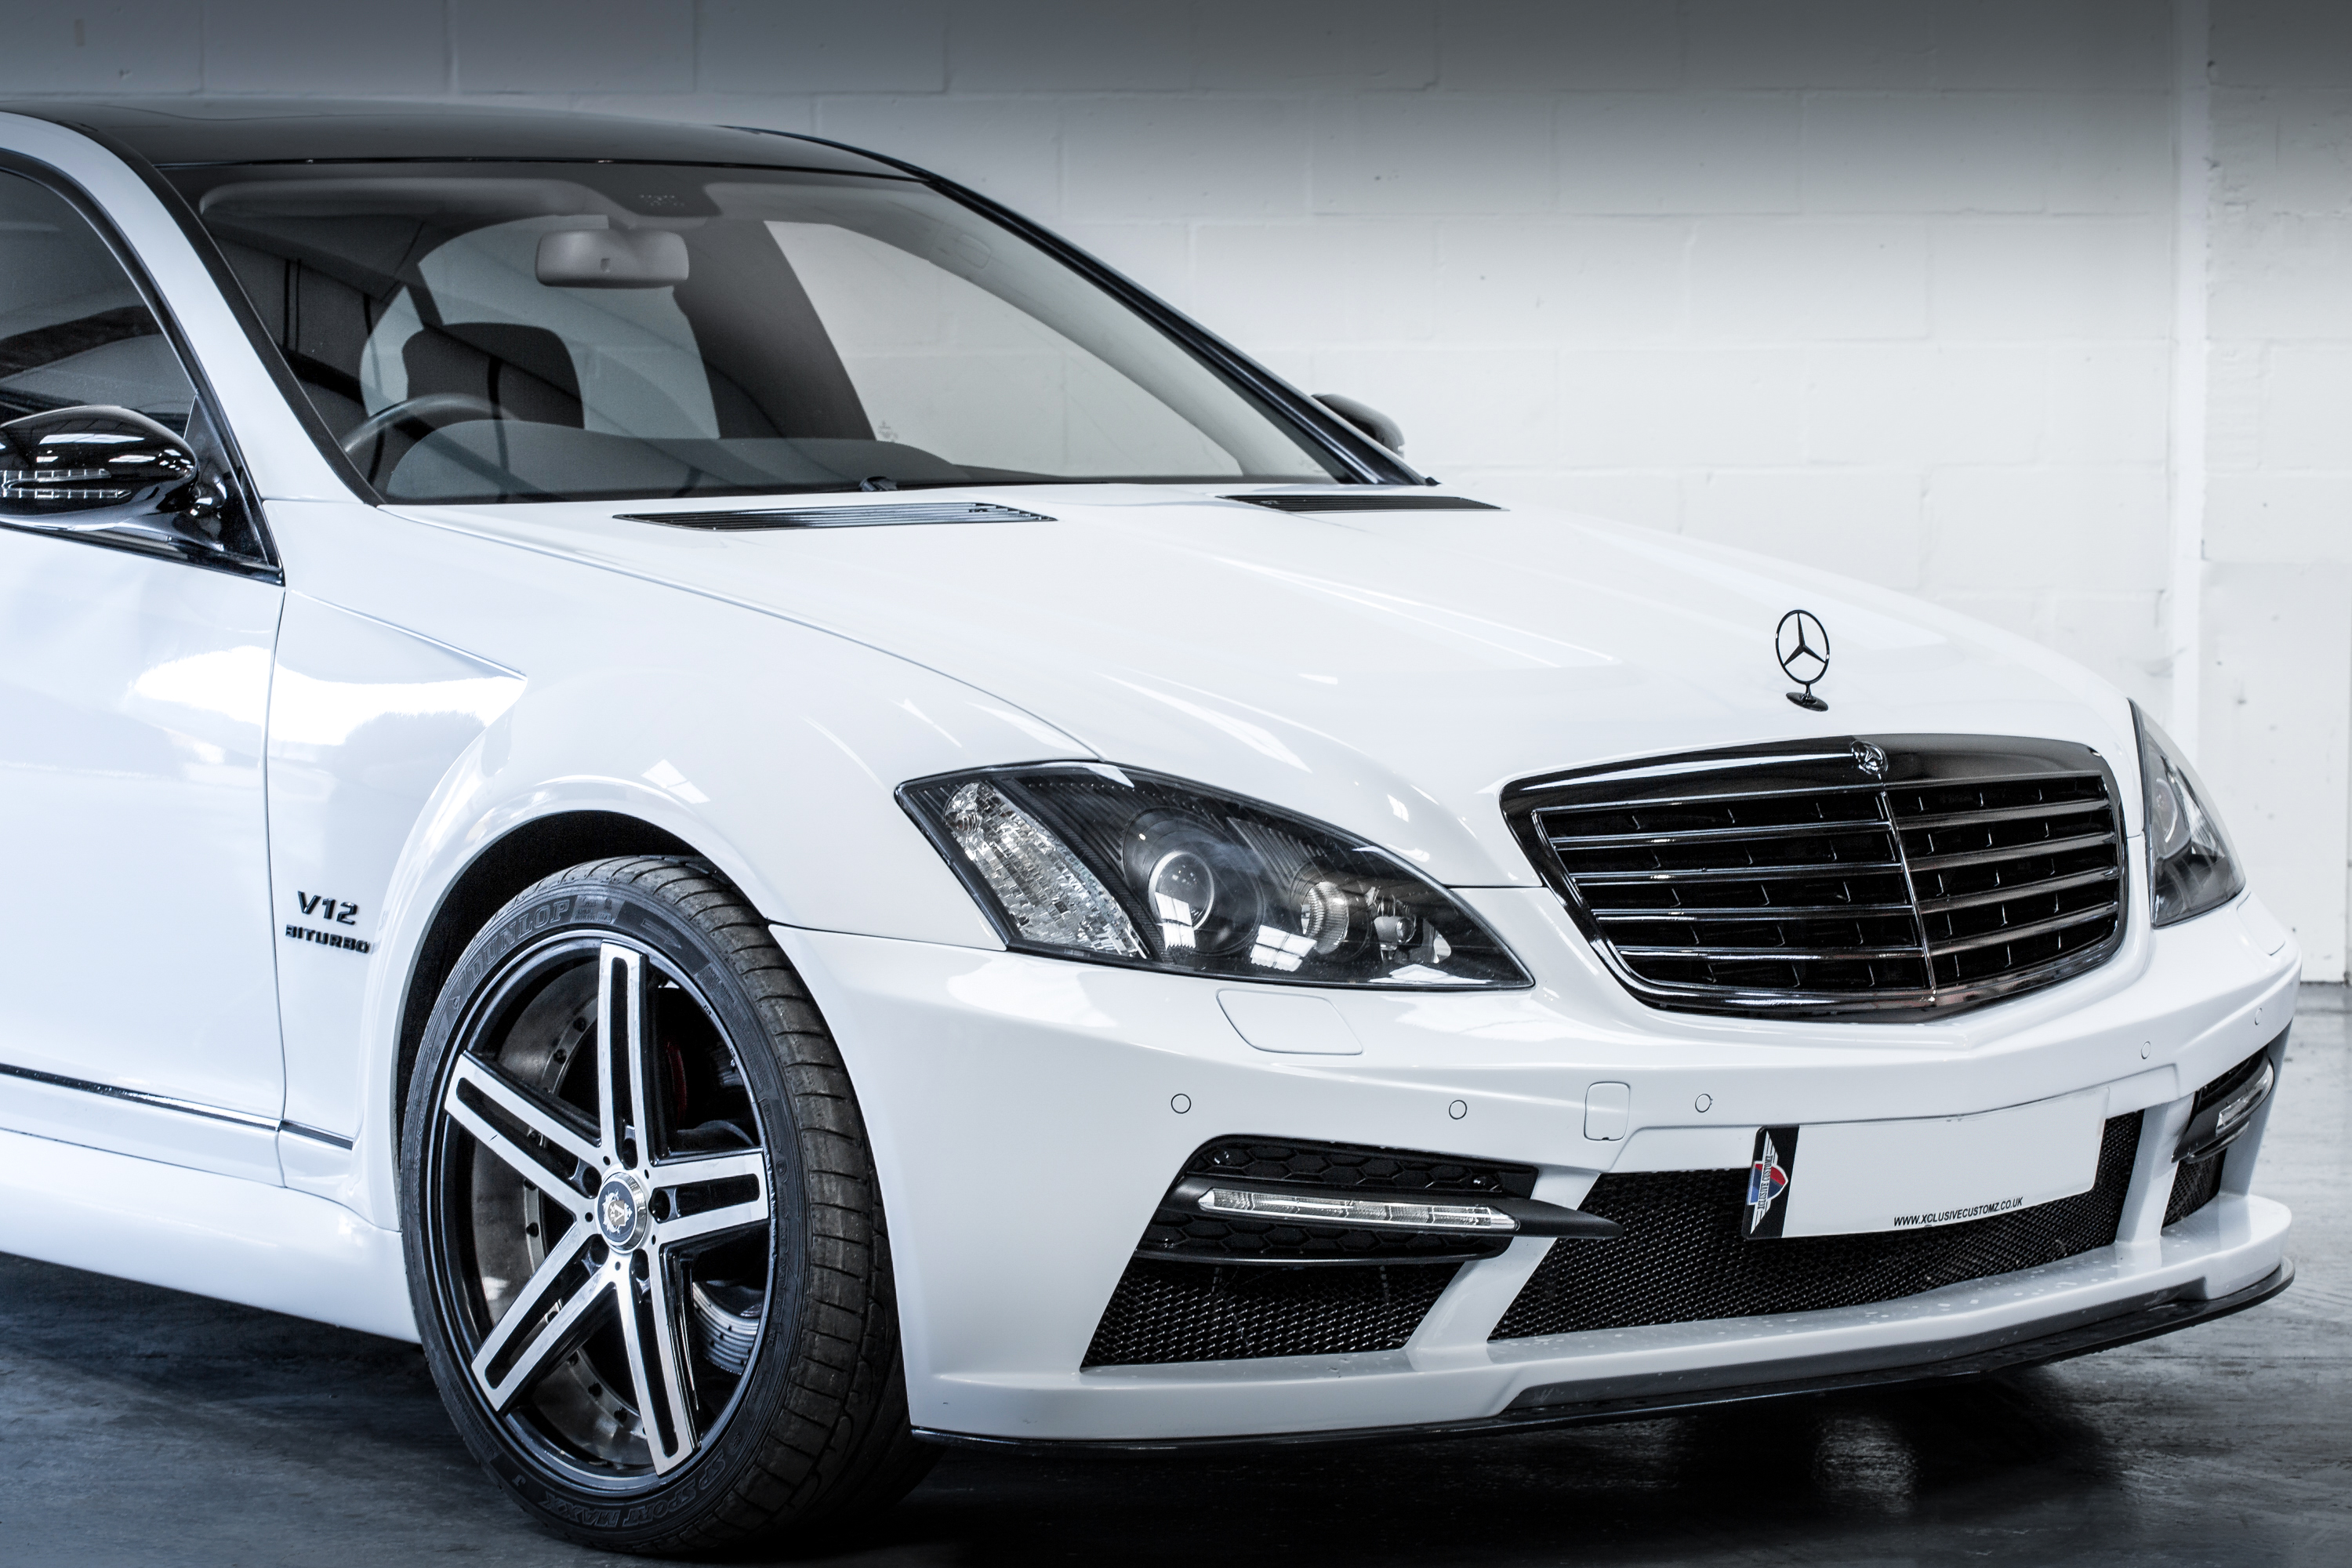 V17A1498 Mercedes S-Class to Black Series Wide Kit